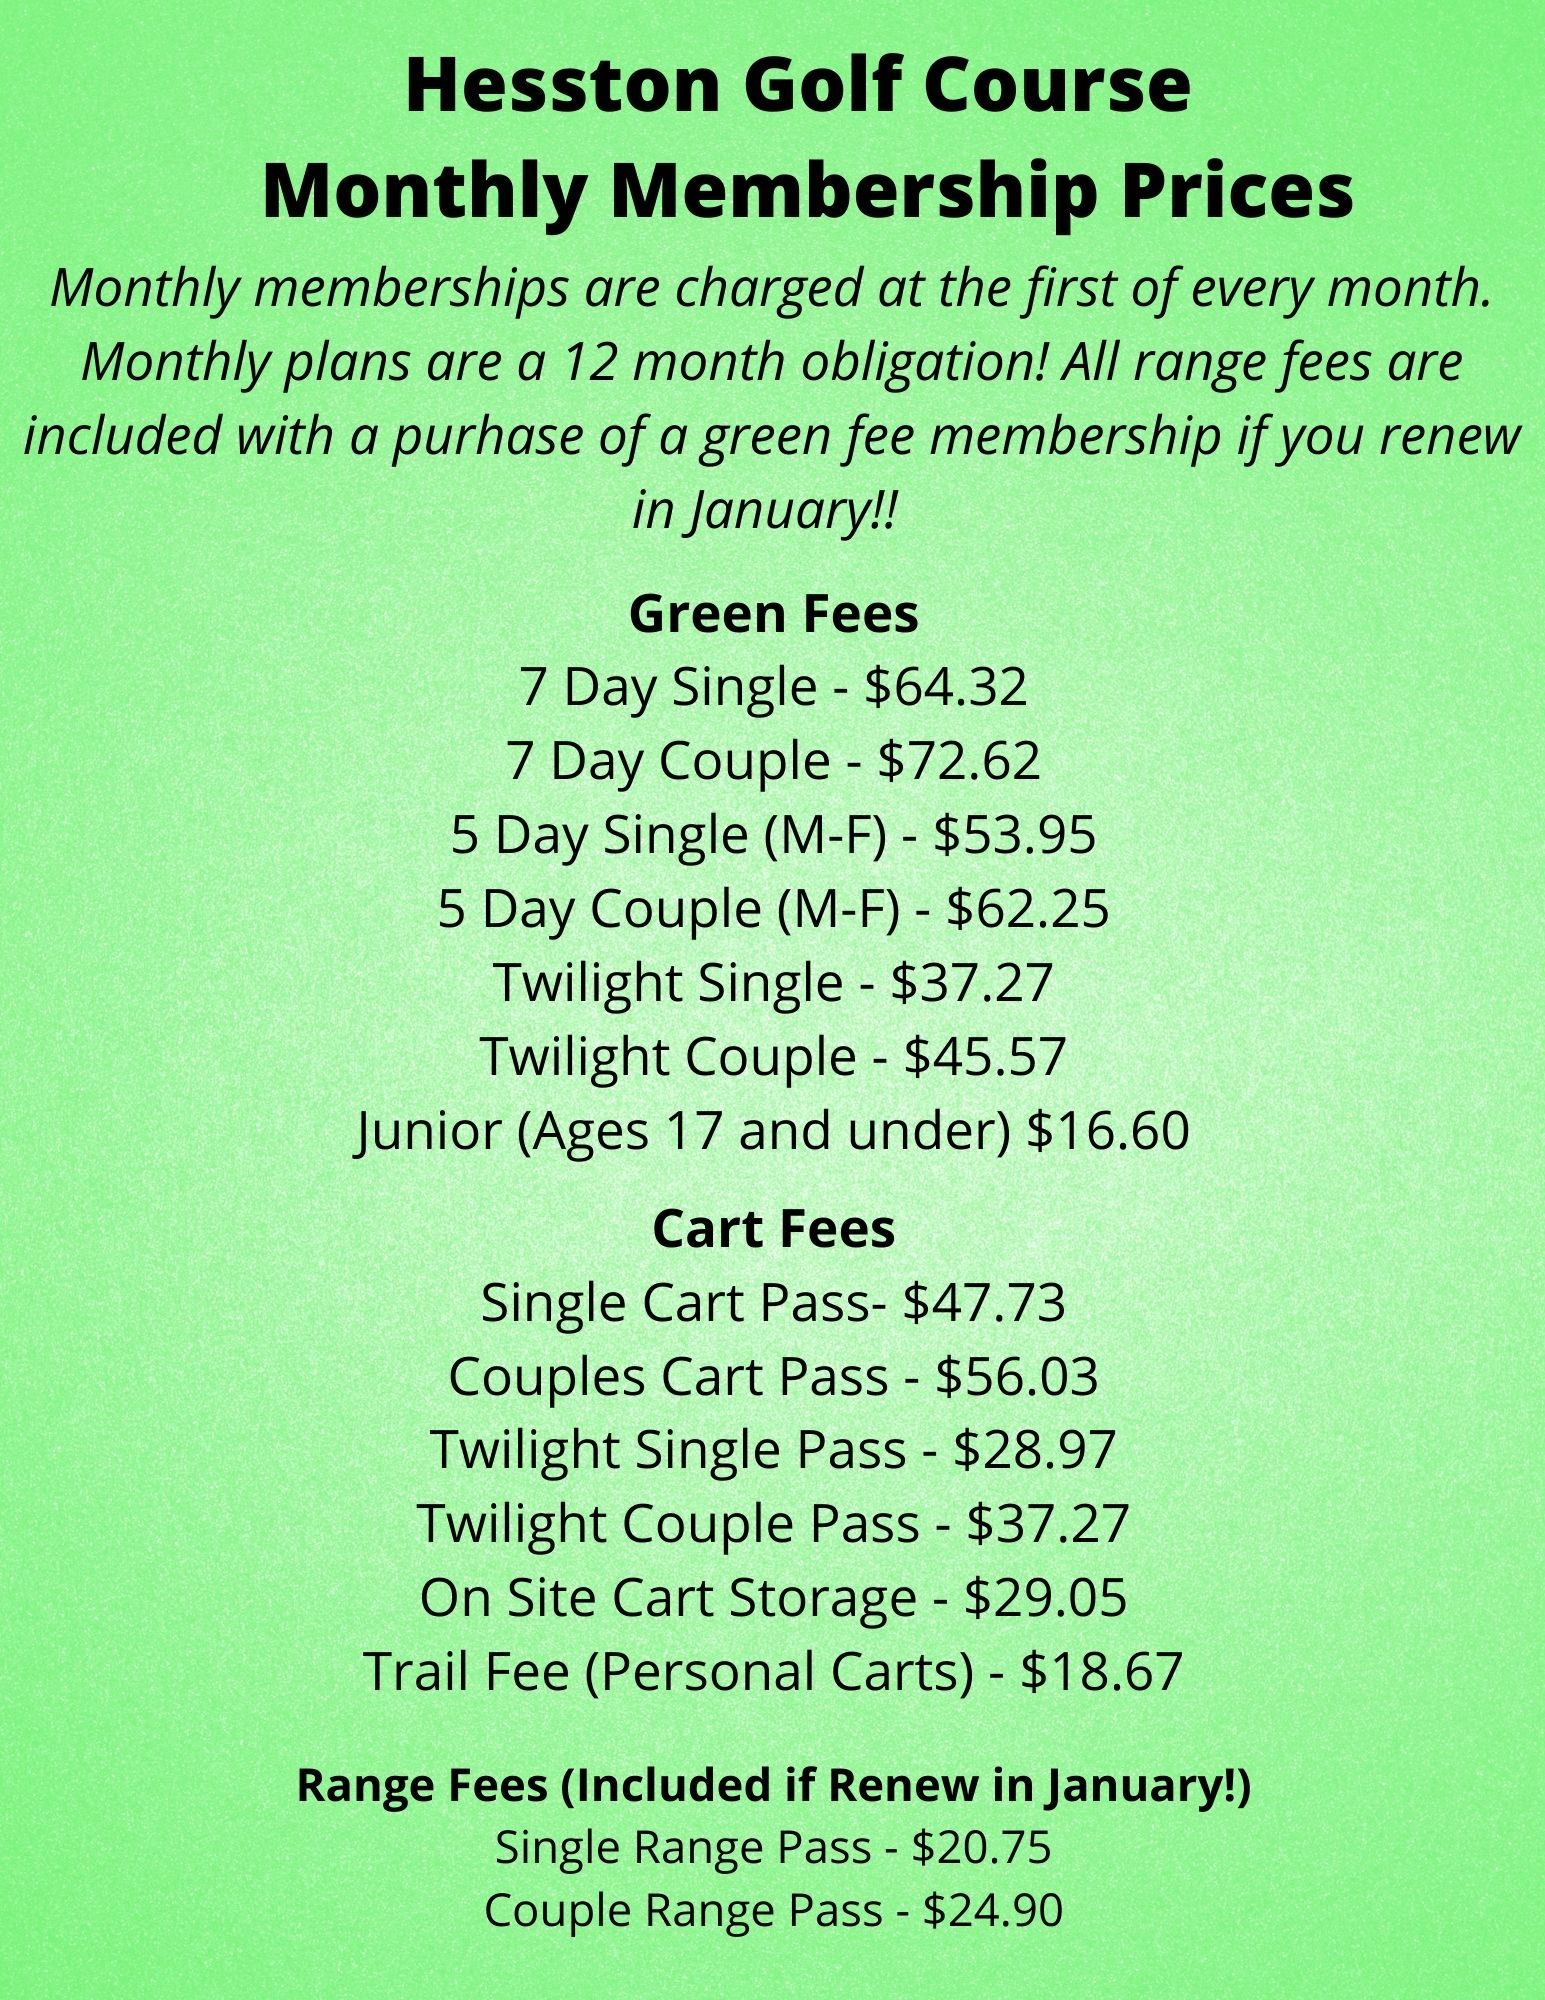 2021 Monthly Membership Prices